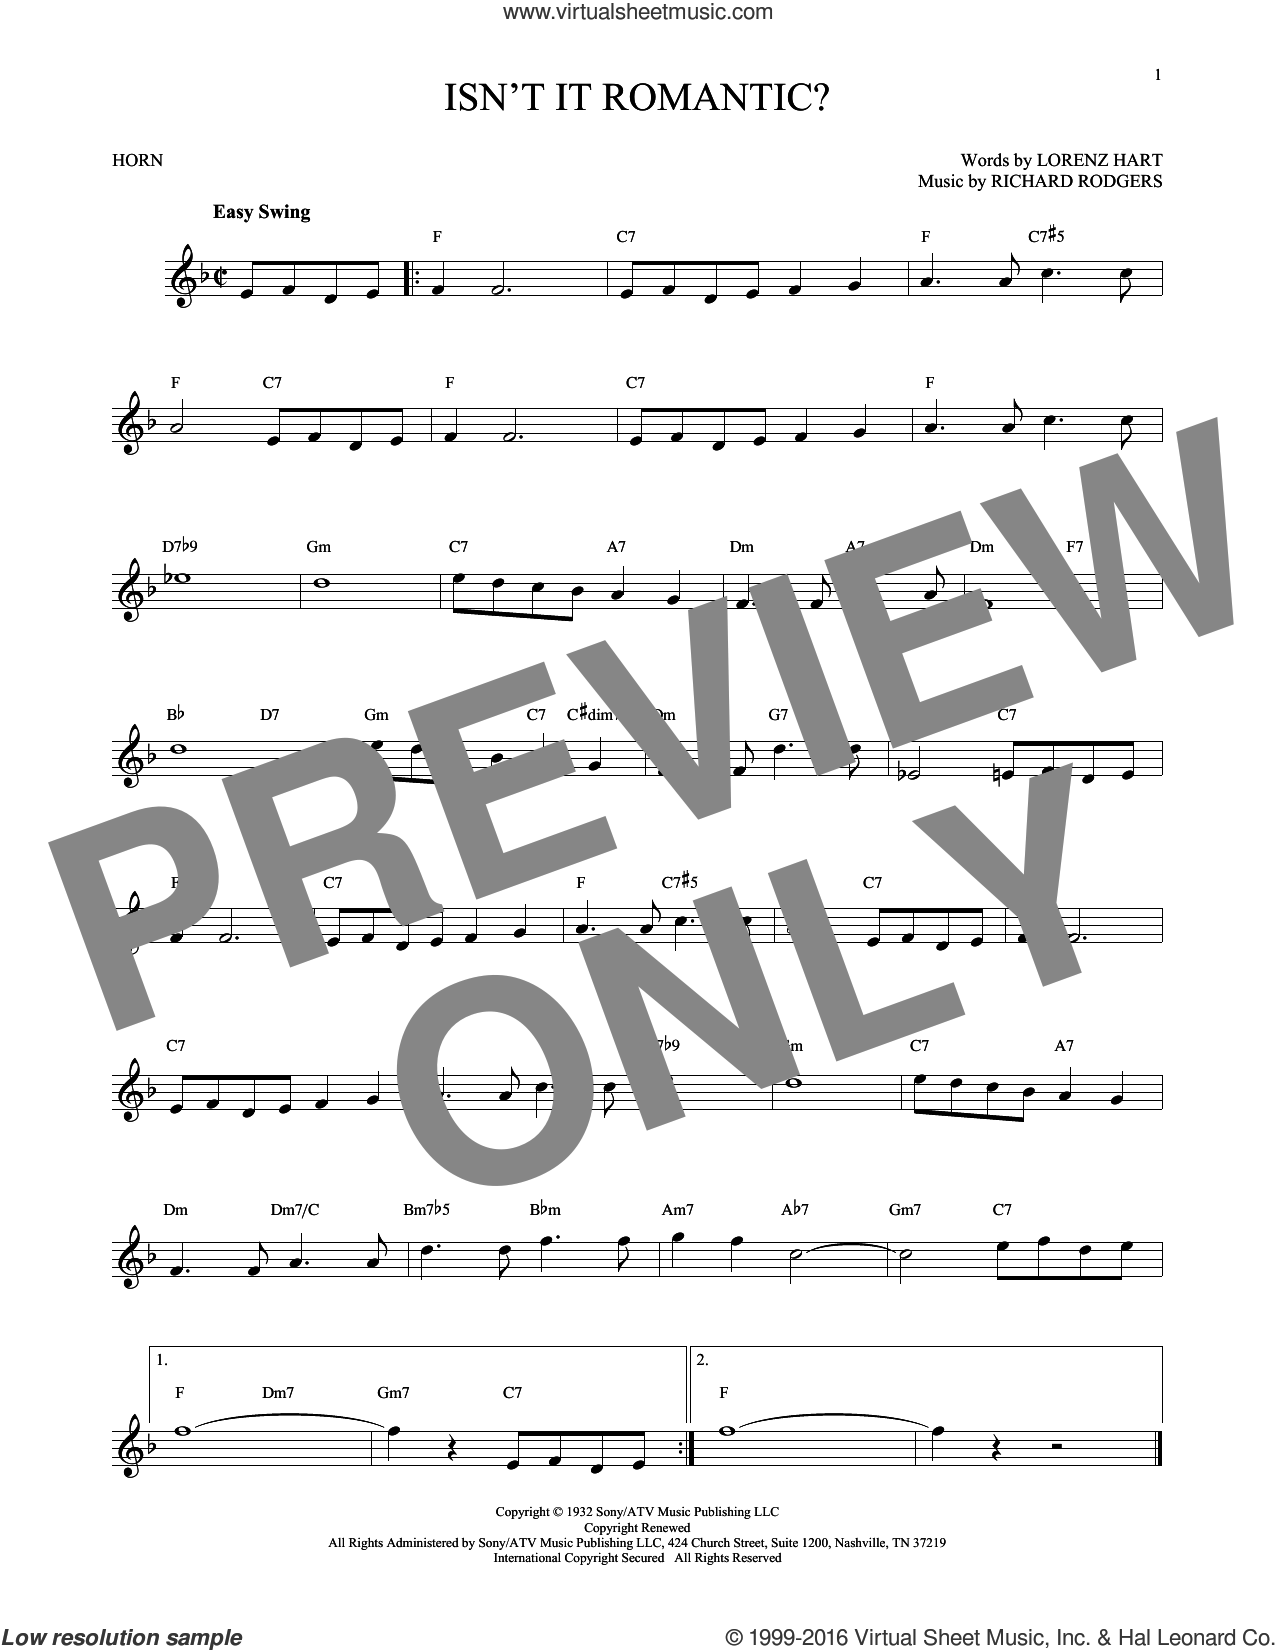 Isn't It Romantic? sheet music for horn solo by Rodgers & Hart, Shirley Horn, Lorenz Hart and Richard Rodgers, intermediate skill level